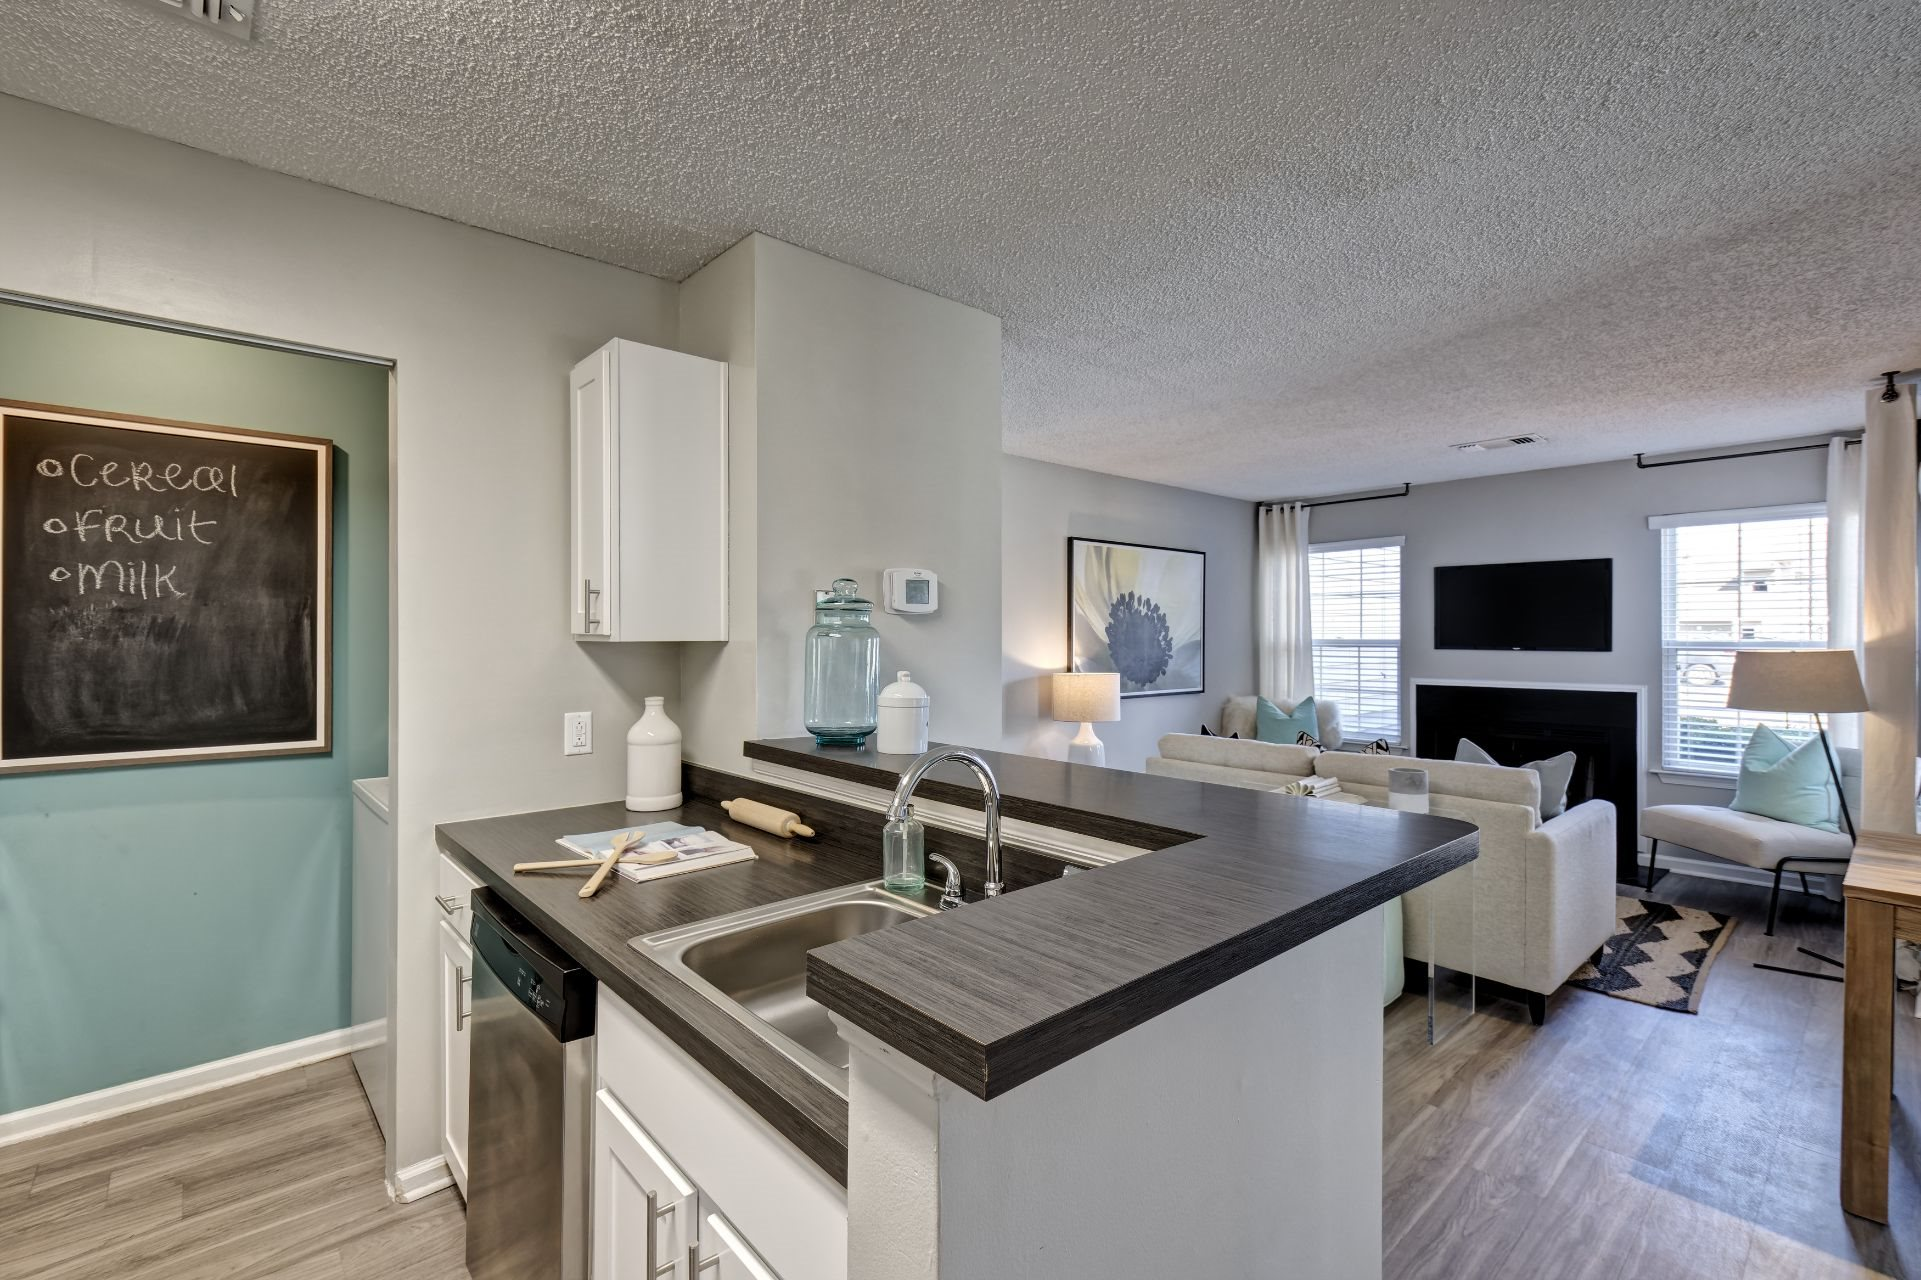 Newly Renovated 1, 2 and 3 Bedroom Apartments in Lawrenceville NJ with Chef's Kitchen, Stainless Appliances, Washer Dryer,  Open-Concept Living, Large Closets and Bedrooms with Work-From-Home Space and Spa Baths -1000 Steward Crossing Way Lawrenceville NJ 08646